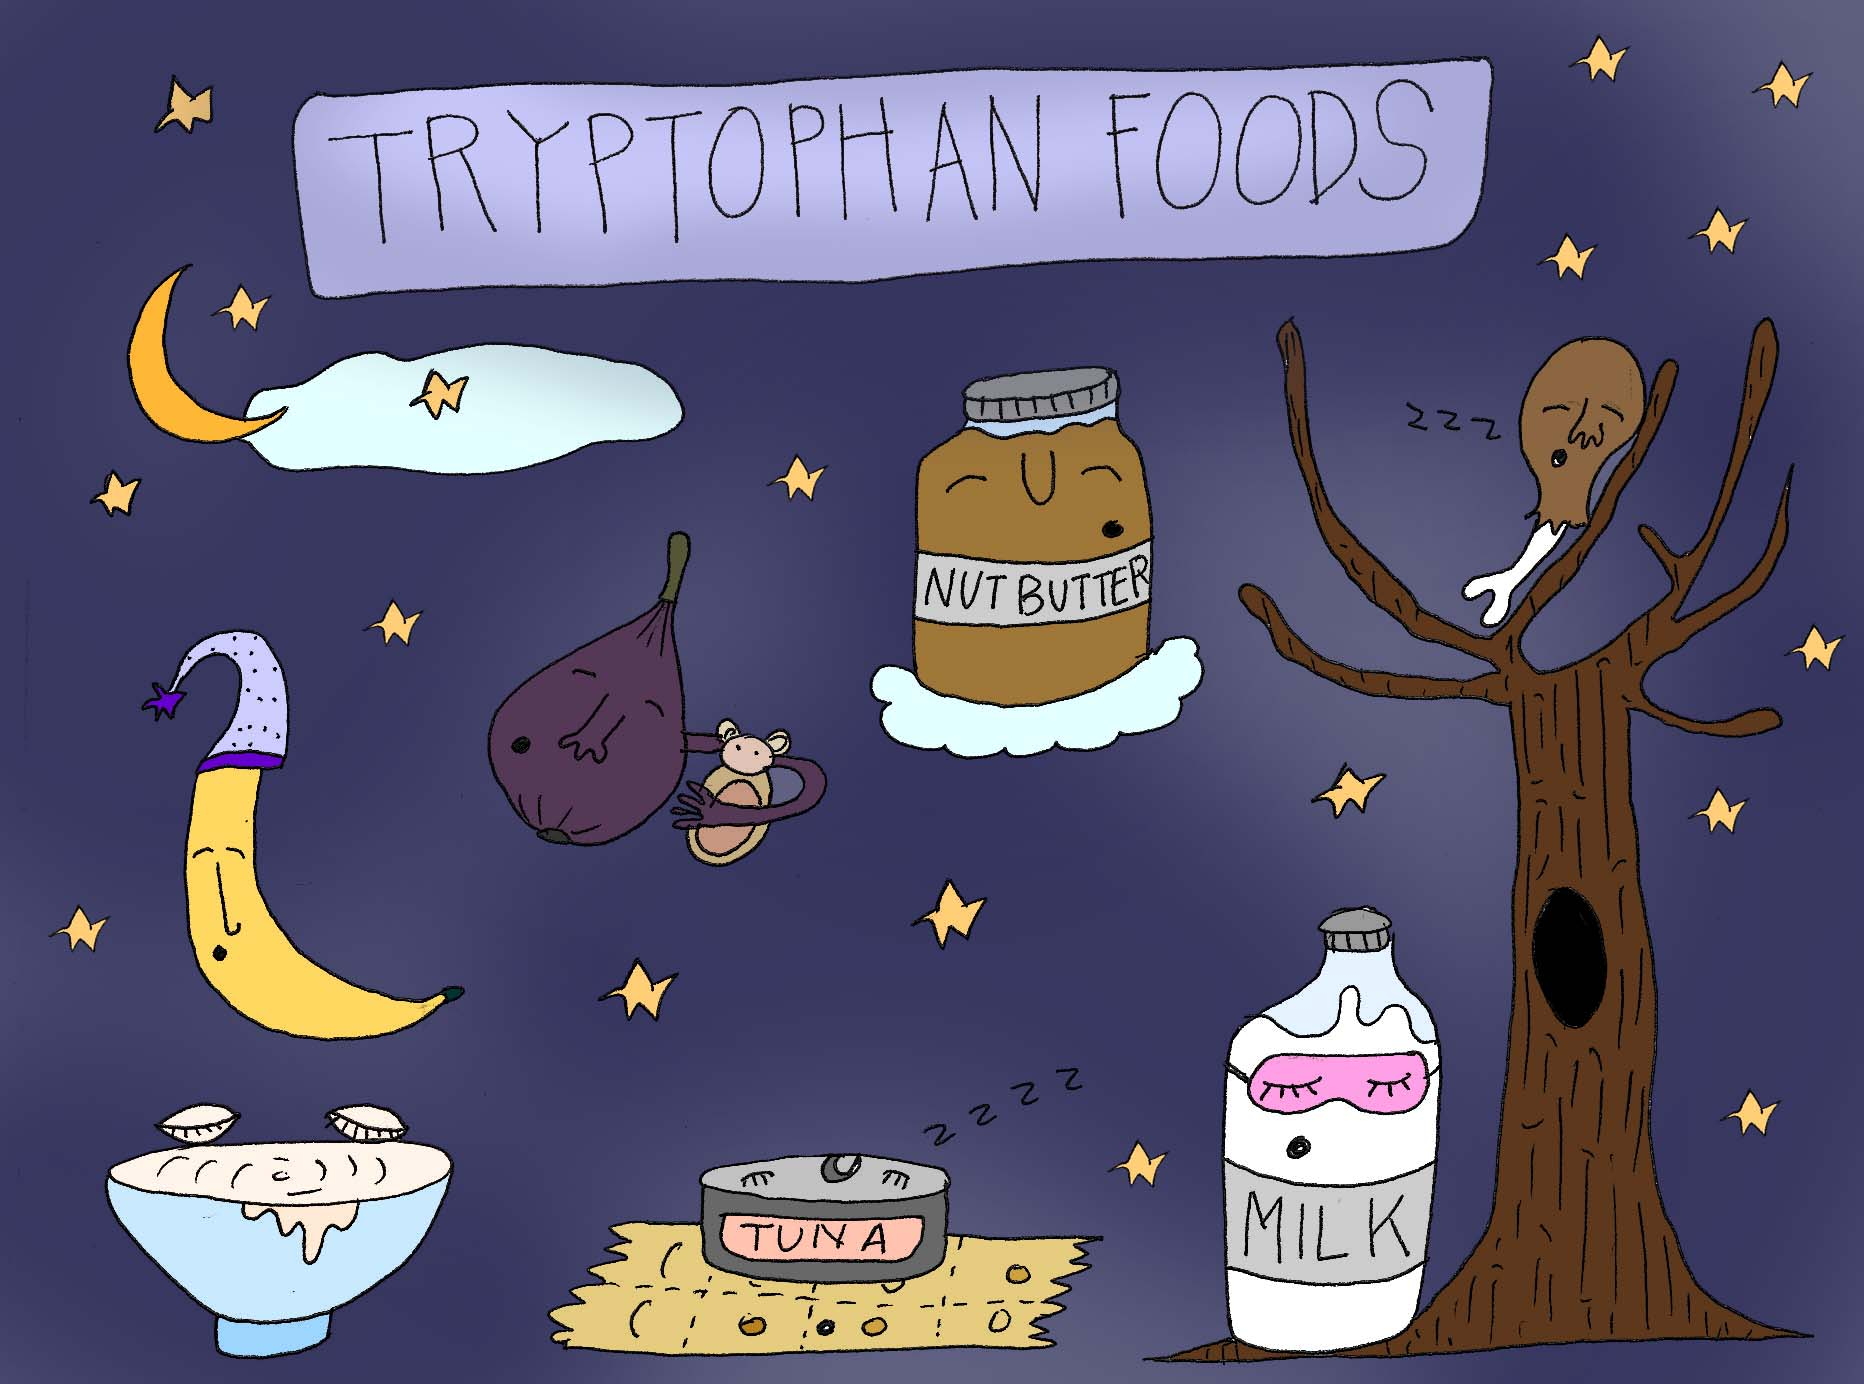 http://ww2.kqed.org/bayareabites/wp-content/uploads/sites/24/2016/05/3.-tryptophan.jpg